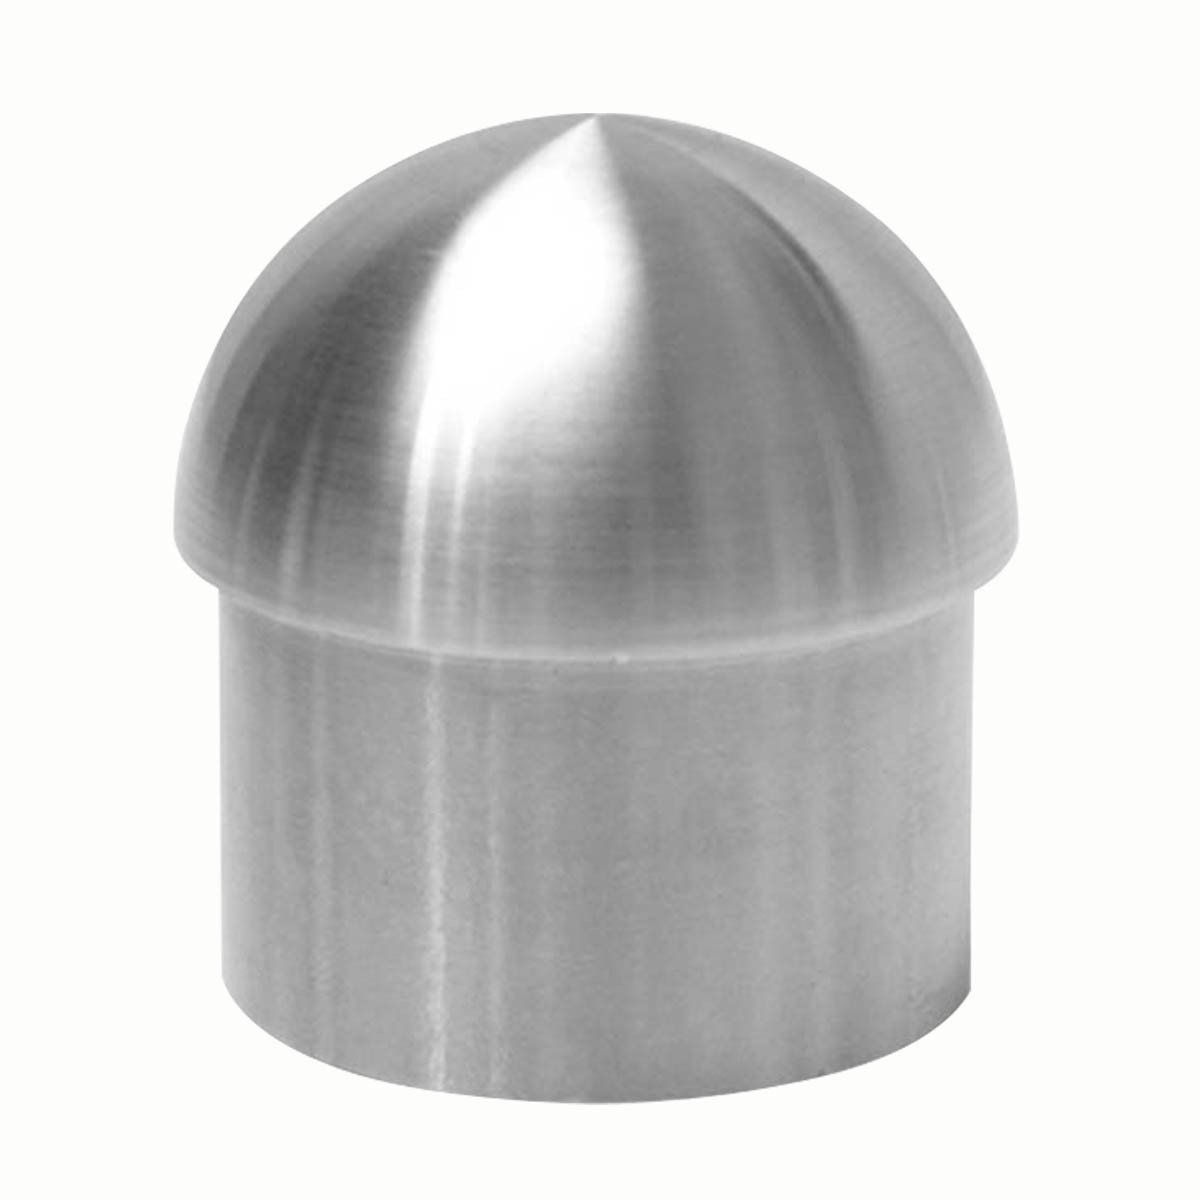 Handicap Rail Or Boat Bar 2'' Domed End Cap Stainless Steel | Renovator's Supply